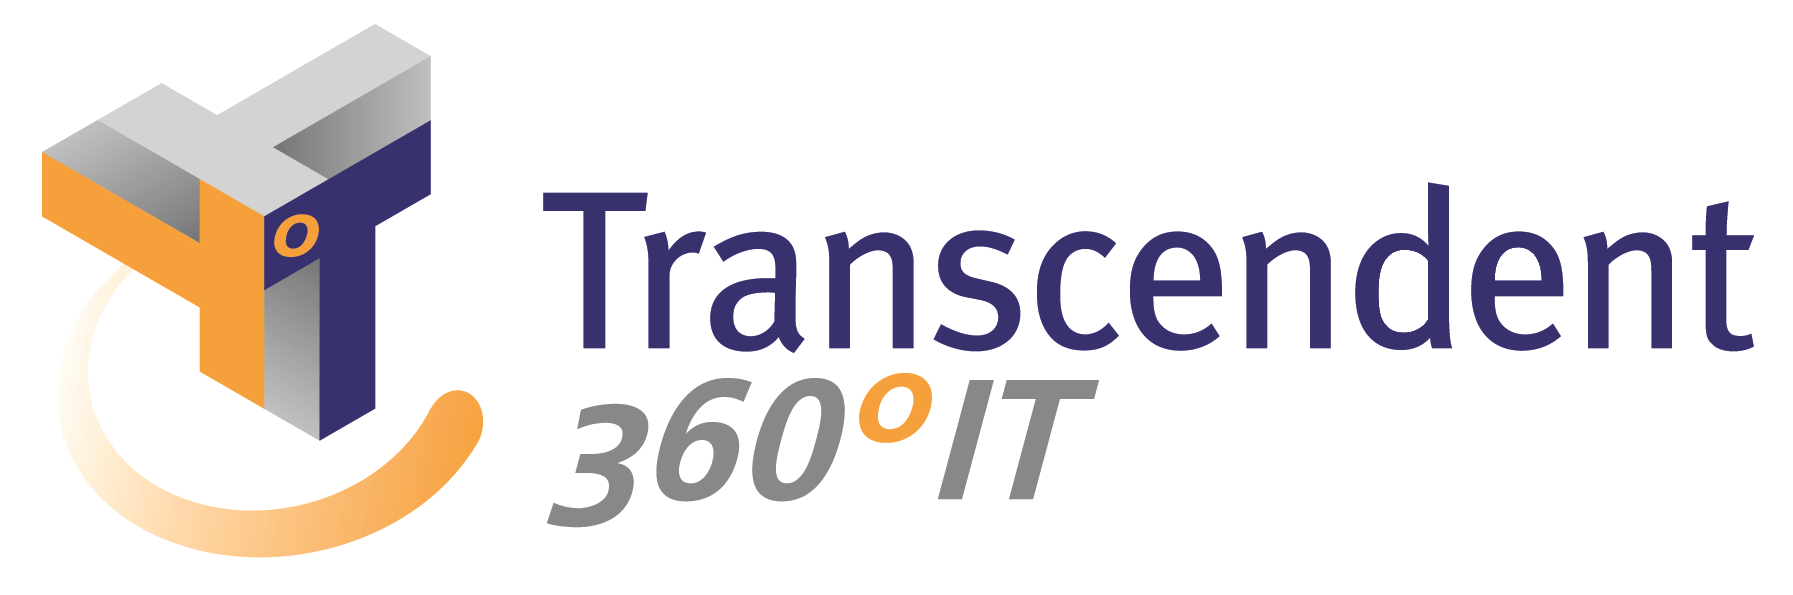 Transcendent is a full service IT consulting and Managed Security Service Provider with Cloud Hosting and Development and SharePoint Engineers in Wisconsin, Illinois, Minnesota